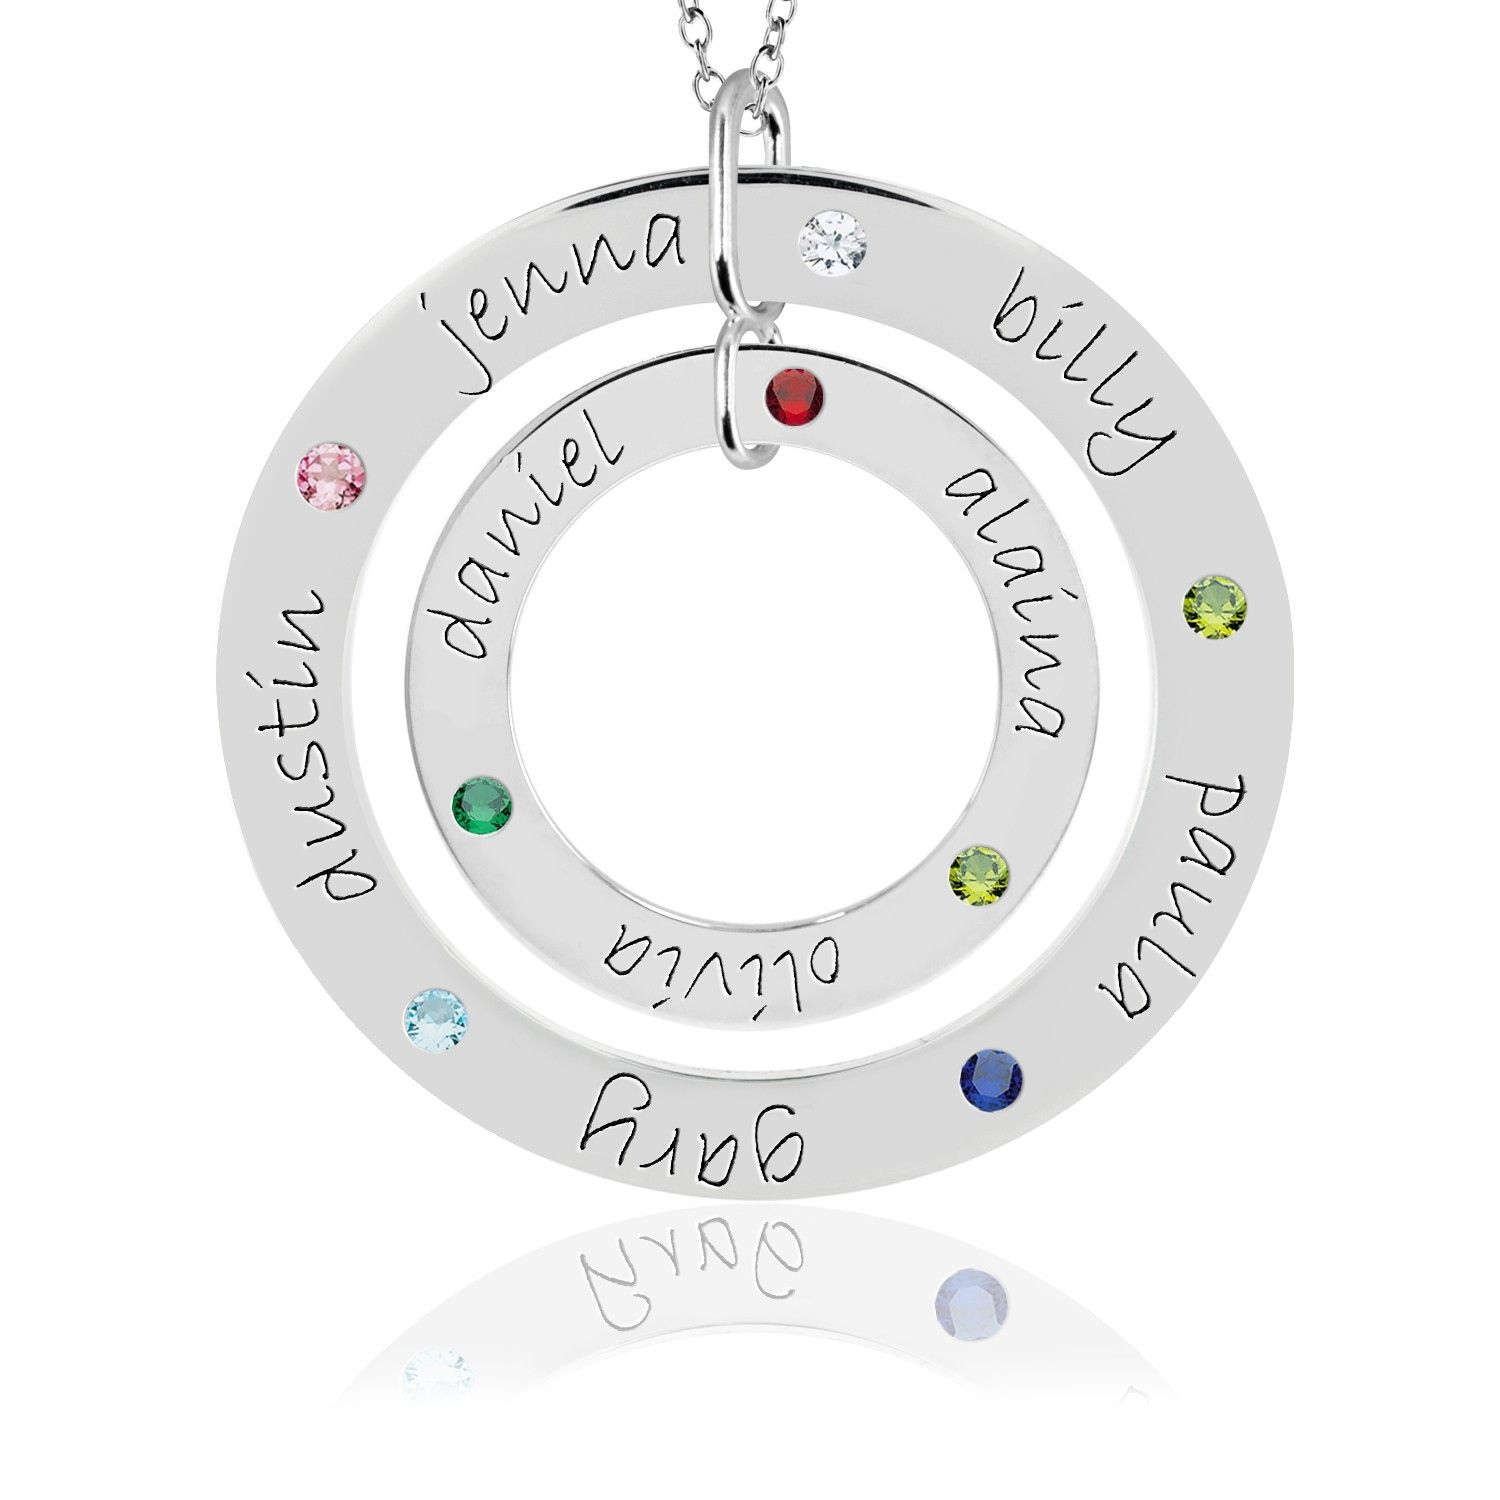 silver addition my sterling the necklace shop name excited grandkid latest pin personalized grandma share etsy kids birthstone to